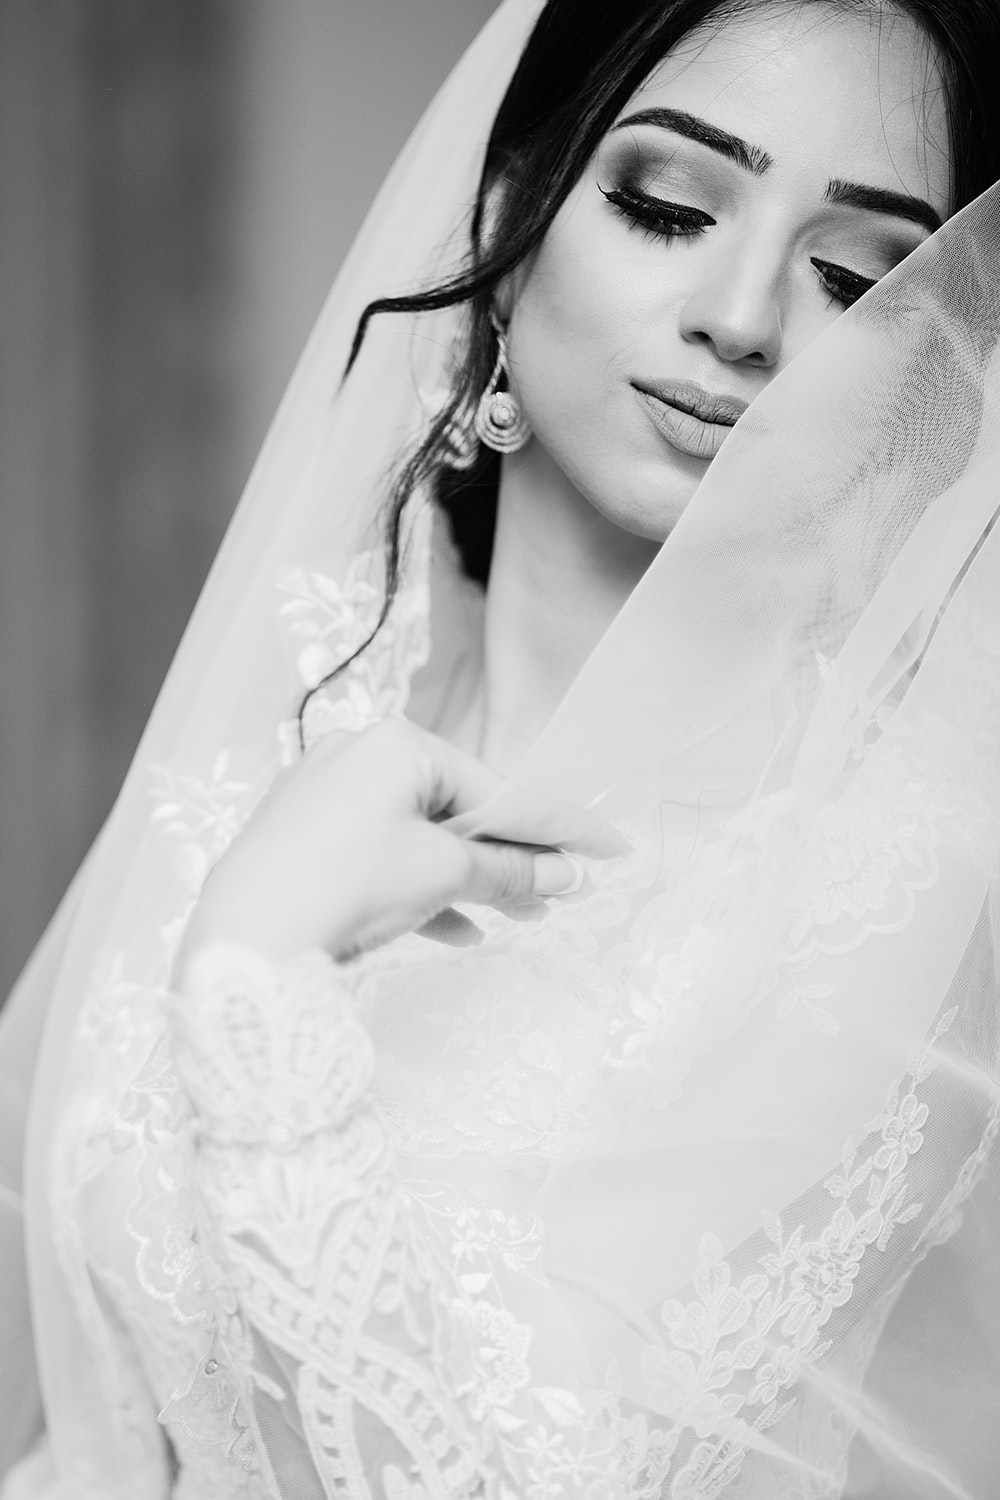 Black And White Shot Of Bride With Veil In Wedding Dress New York Texas